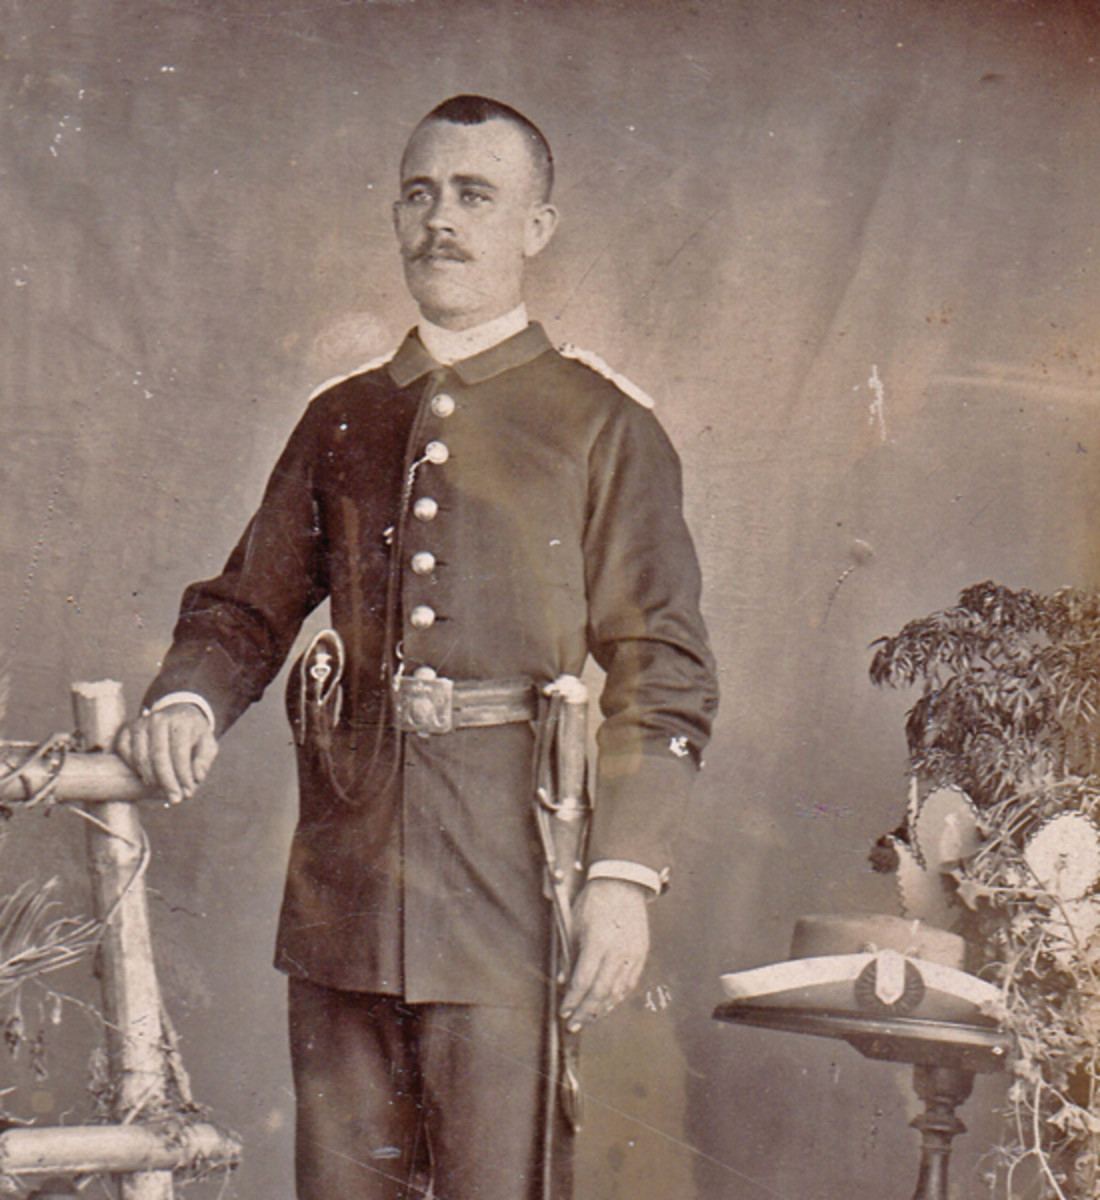 A Civil Guard in Cuba, ca. 1895. The larger size police cockade is worn on the brim of the gray felt 'Chamburgo' brimmed hat worn by this corps in the colonies.